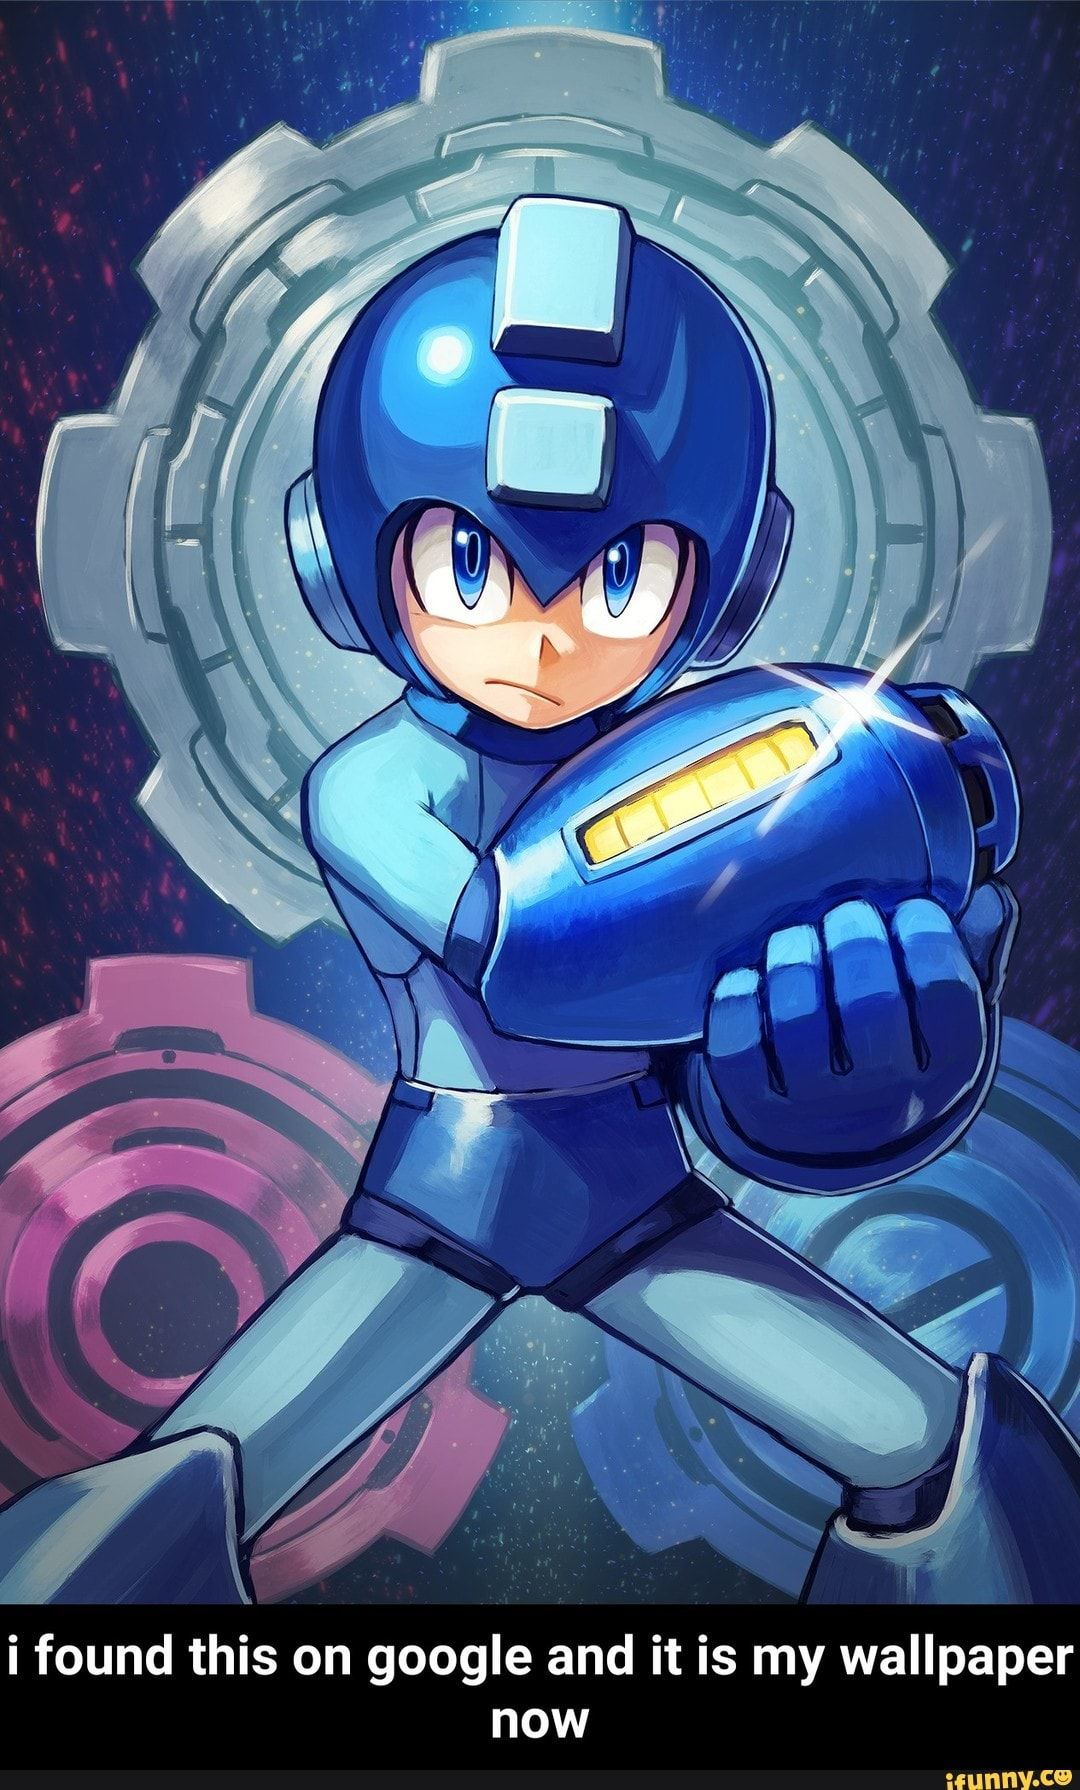 I Found This On Google And It Is My Wallpaper Now Ifunny Mega Man Art Retro Gaming Art Mega Man